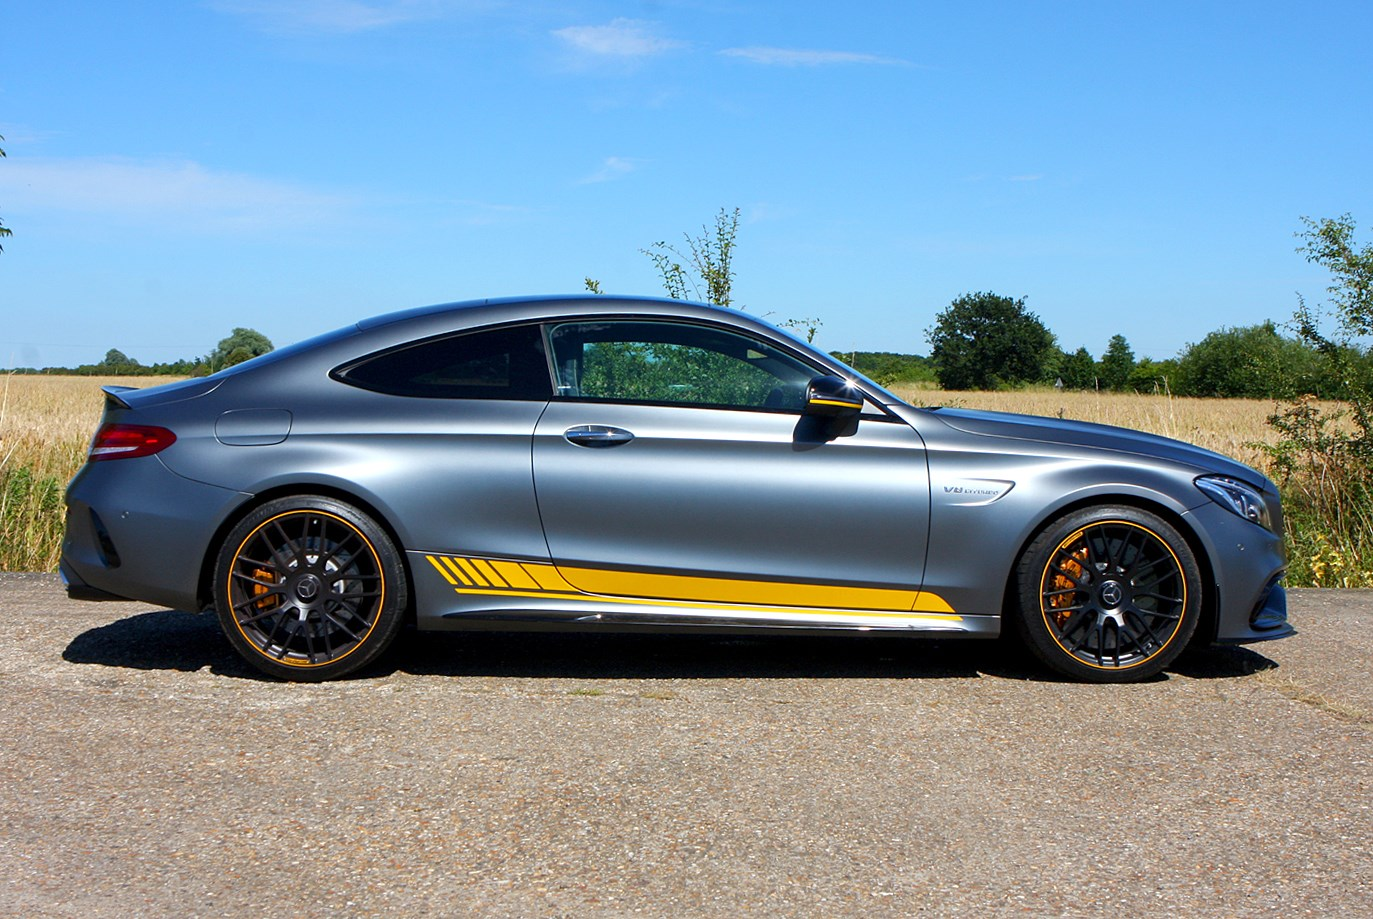 Mercedes benz c class amg 2015 running costs parkers for How much does a mercedes benz cost